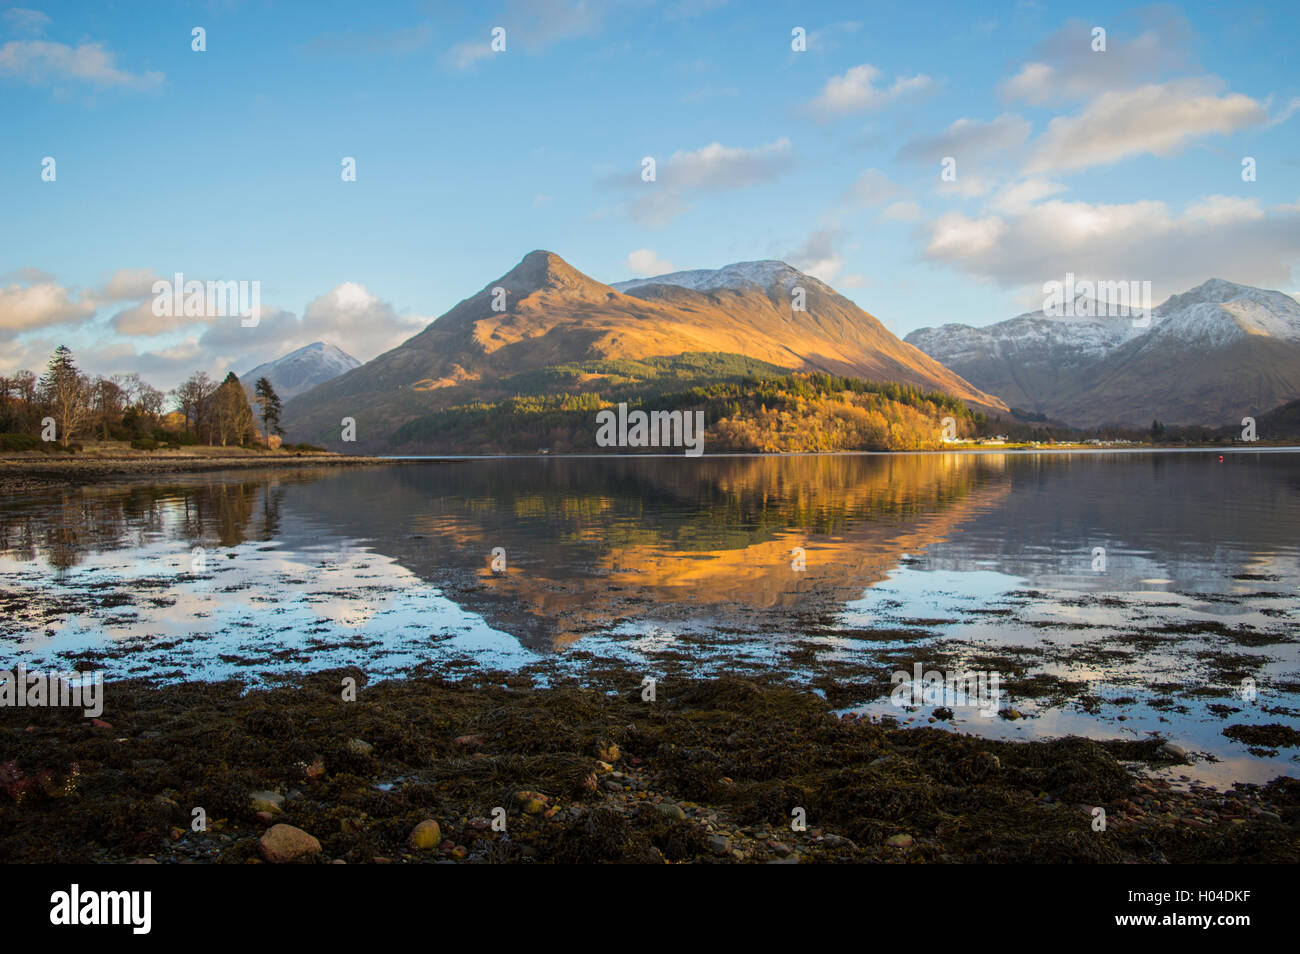 Looking across Loch Leven to the Pap of Glencoe - Stock Image